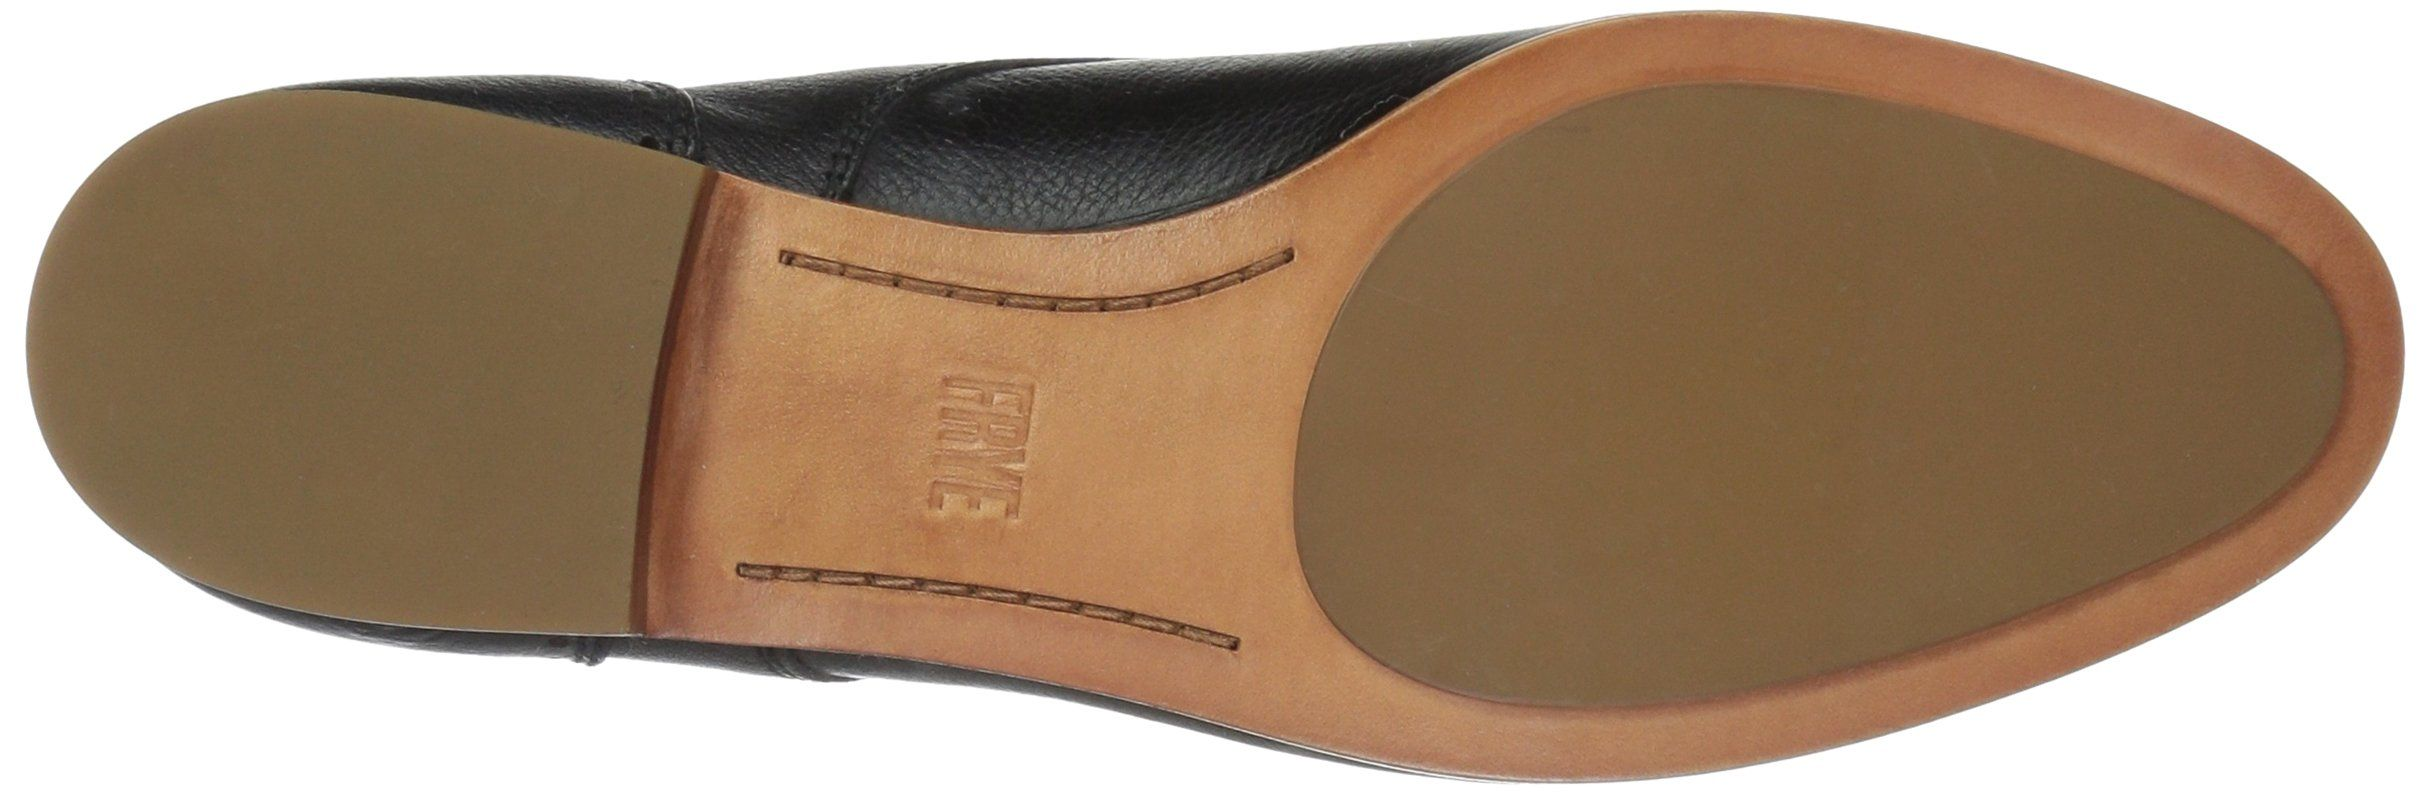 dee77e518ace33 Shoes women · FRYE Womens Terri Perf Oxford Flat Black 9 M US     Visit the  image